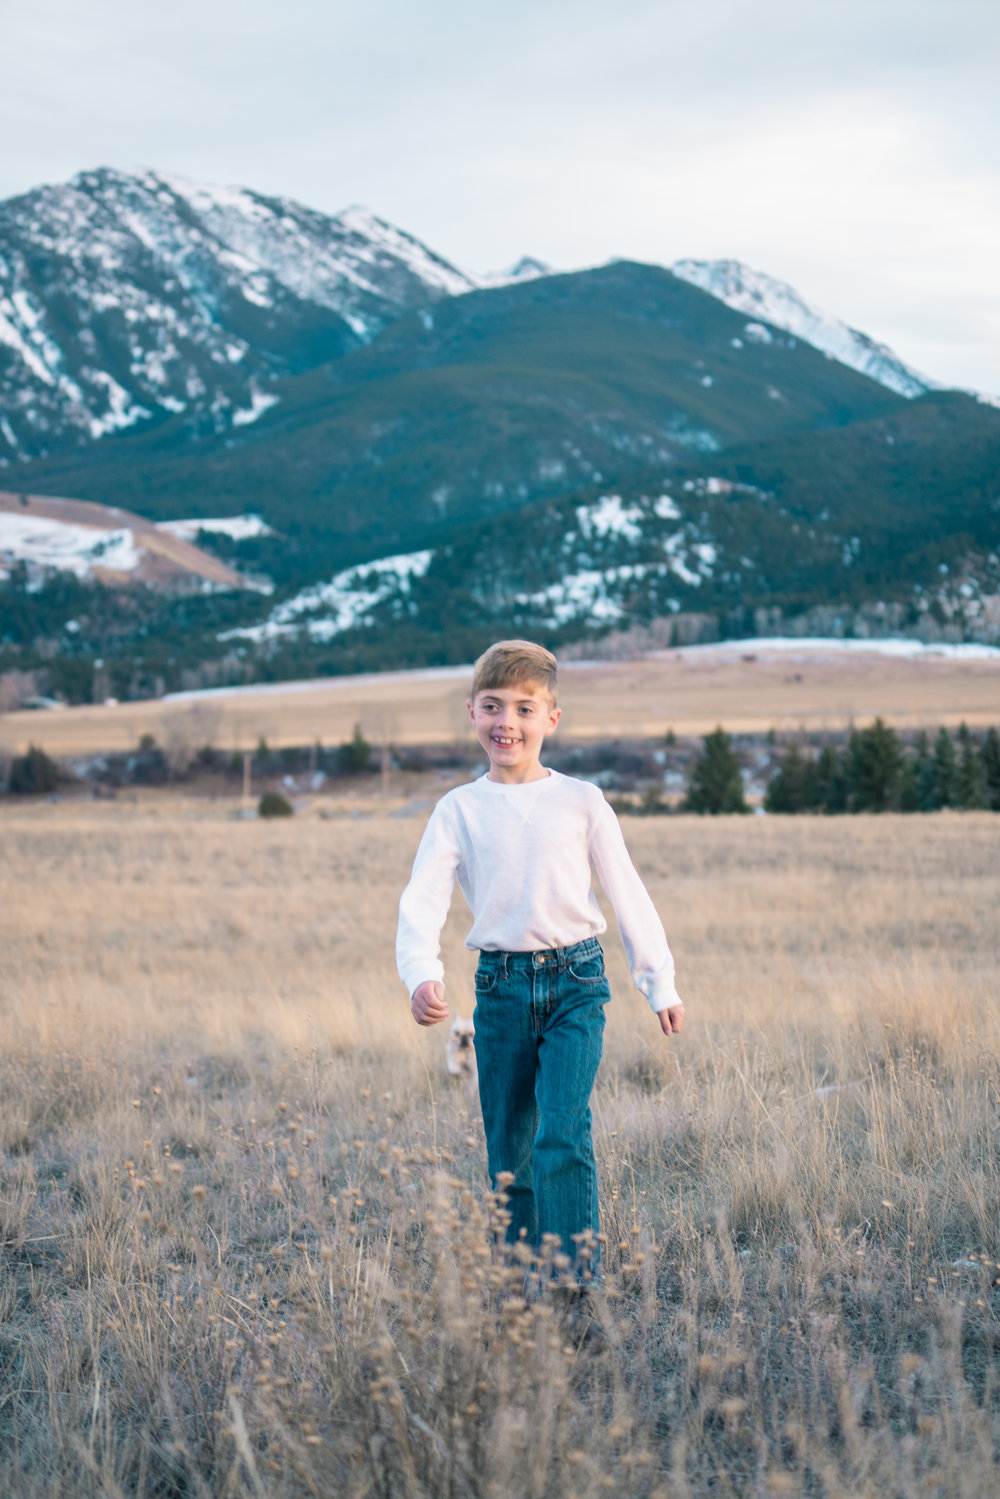 A portrait of a young boy in Paradise Valley, Montana.